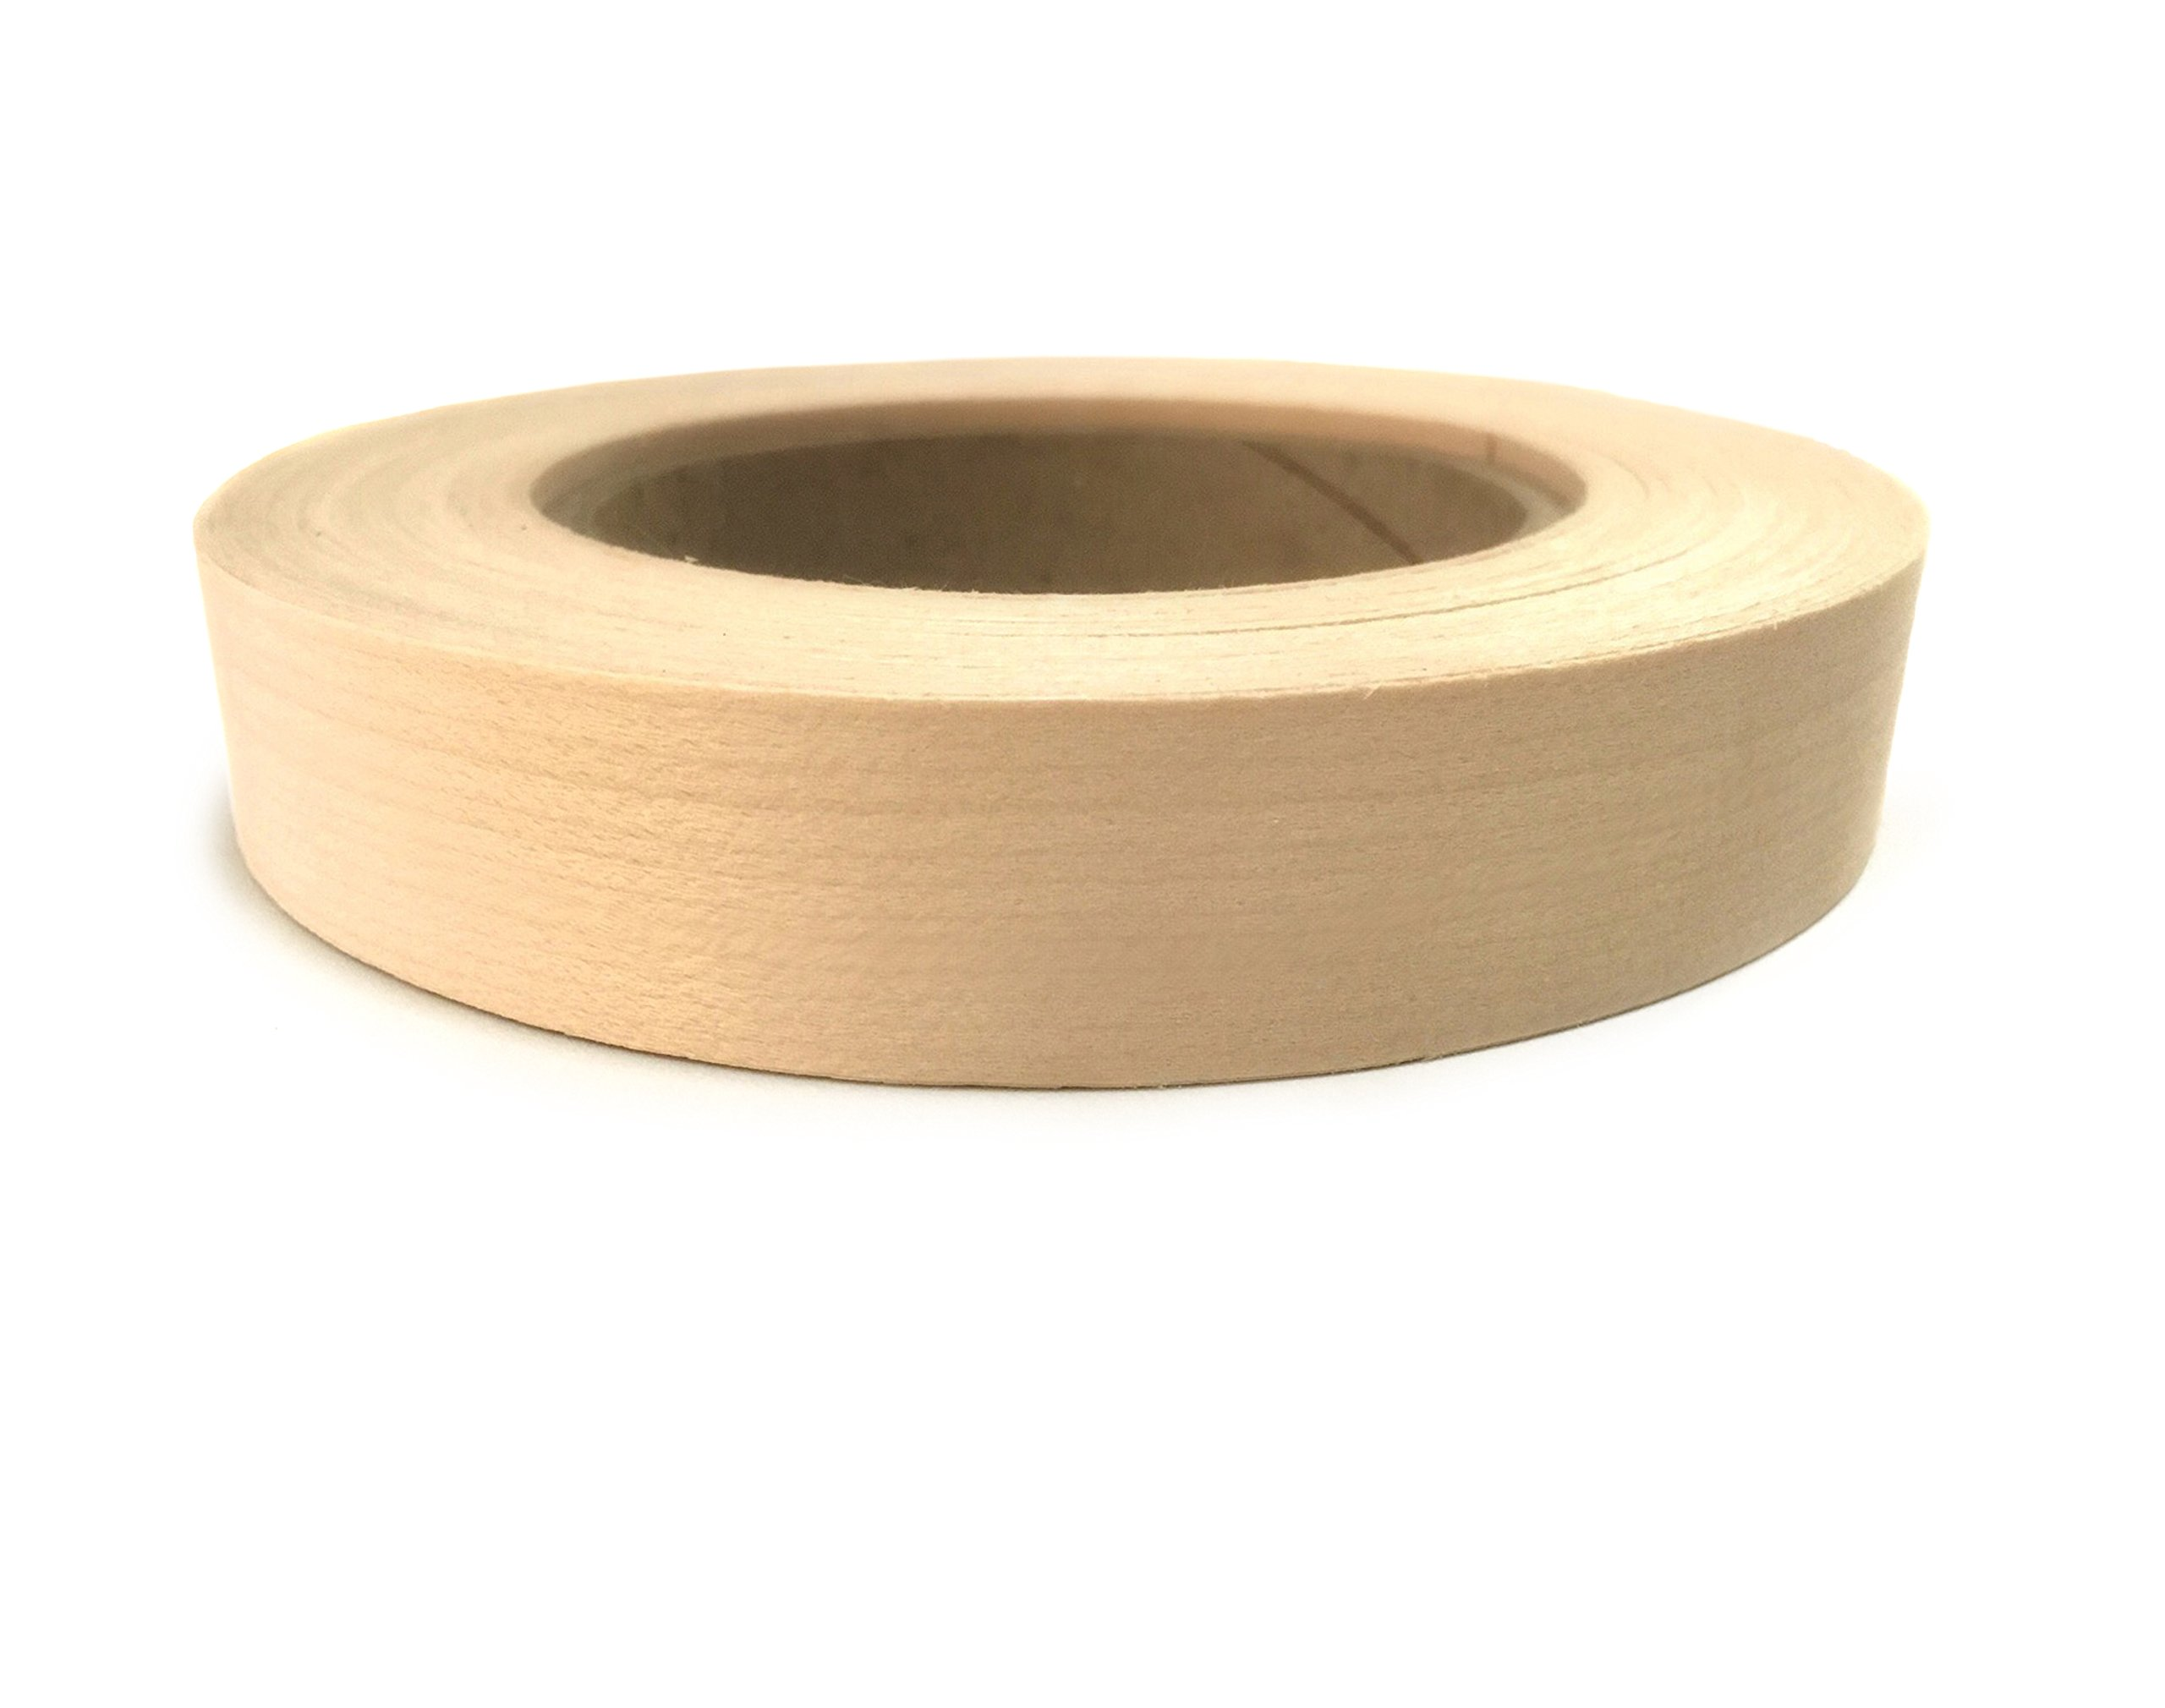 Maple Preglued 1 1/8'' X 50' Wood Veneer Edgebanding.. Easy Application Iron On with Hot Melt Adhesive. Smooth Sanded Finish. Flexible Edging. Made in USA. by Edge Supply